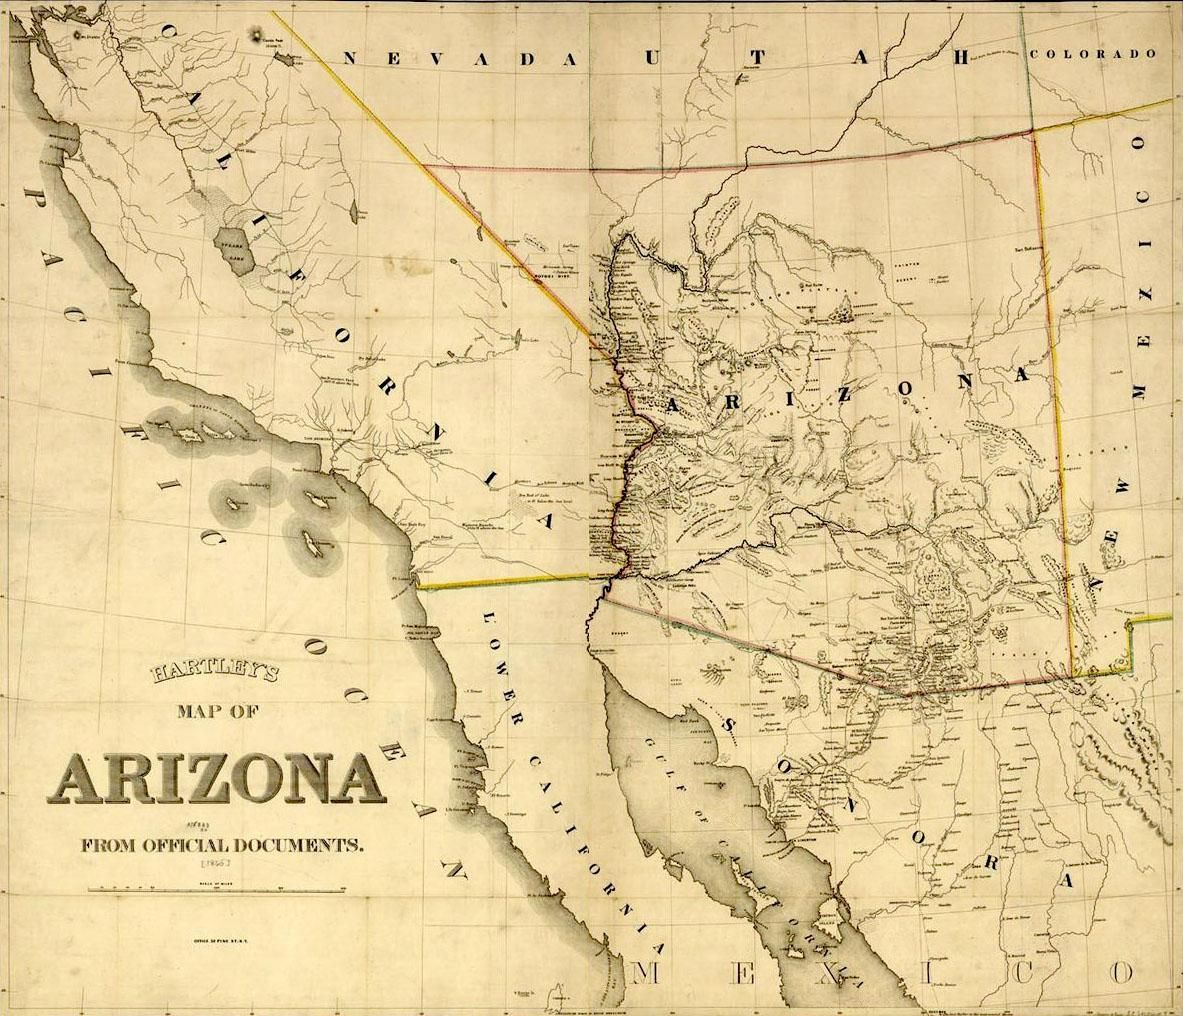 This is an image of Hartleys Map of Arizona Territory from 1865